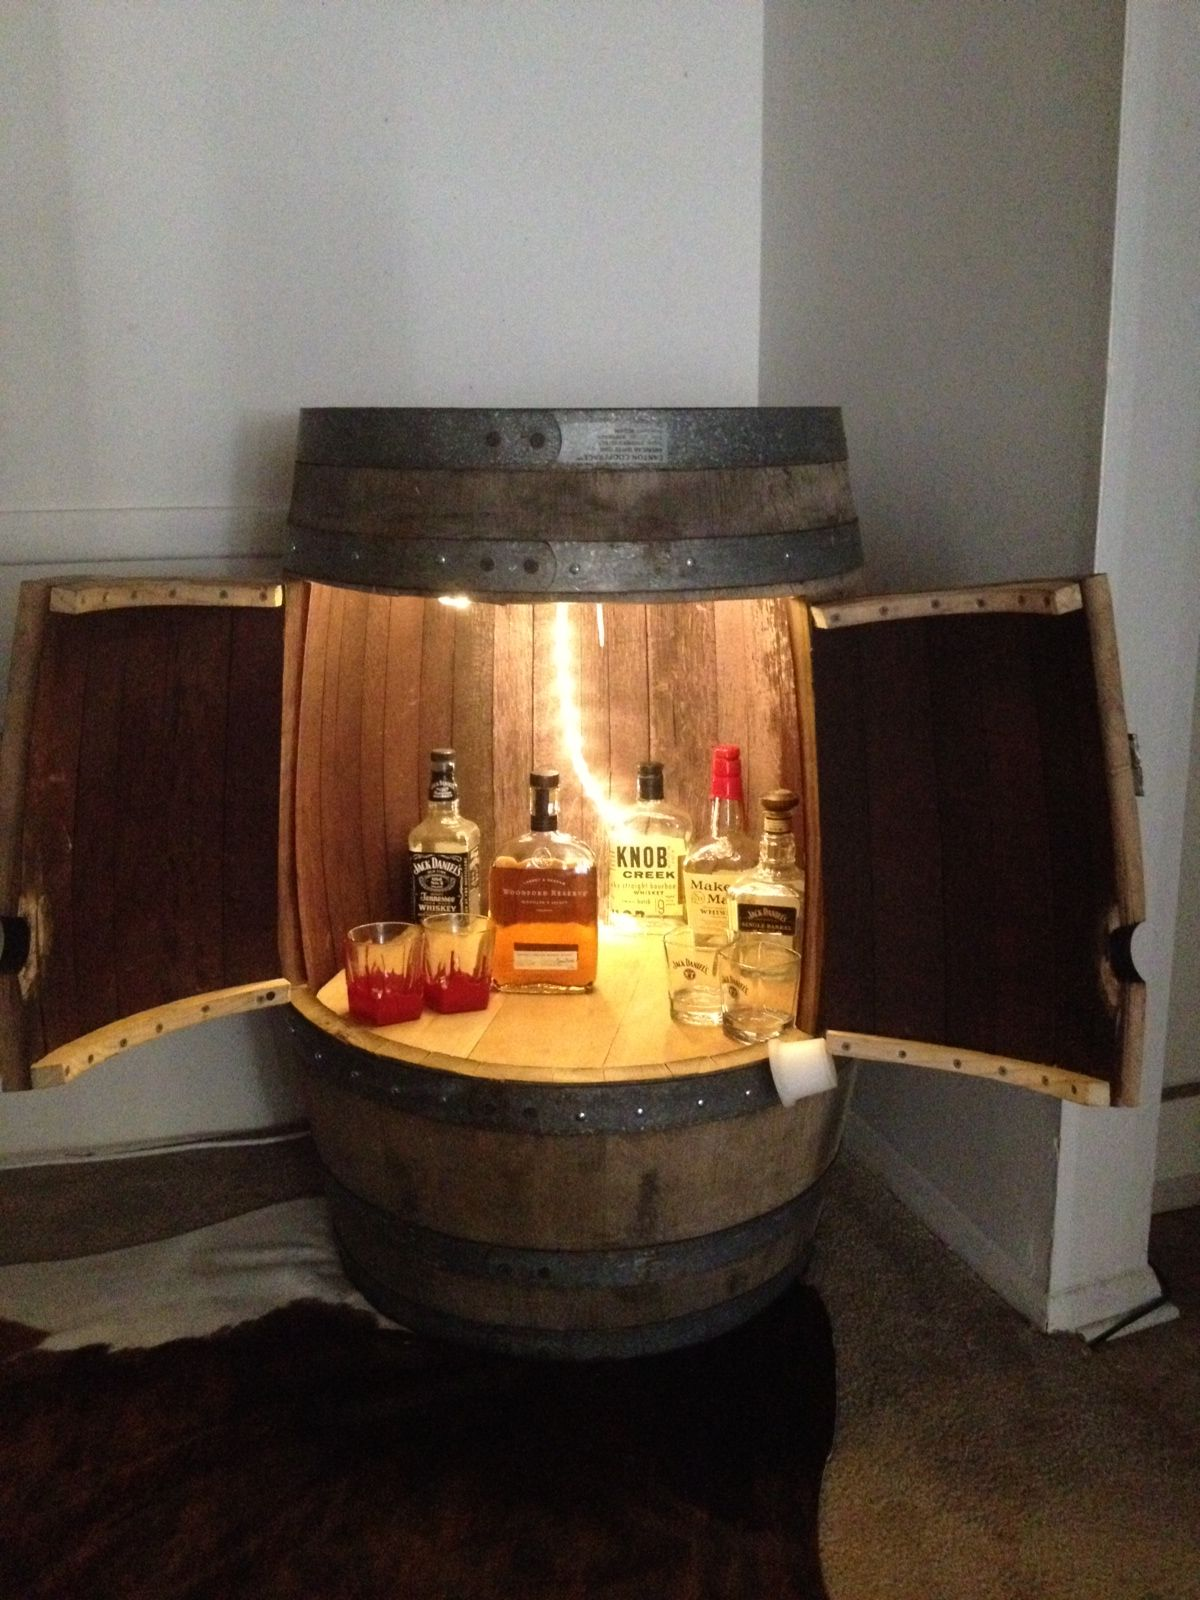 Merveilleux Whiskey Barrel For A Liquor Cabinet. My Brother Made This!